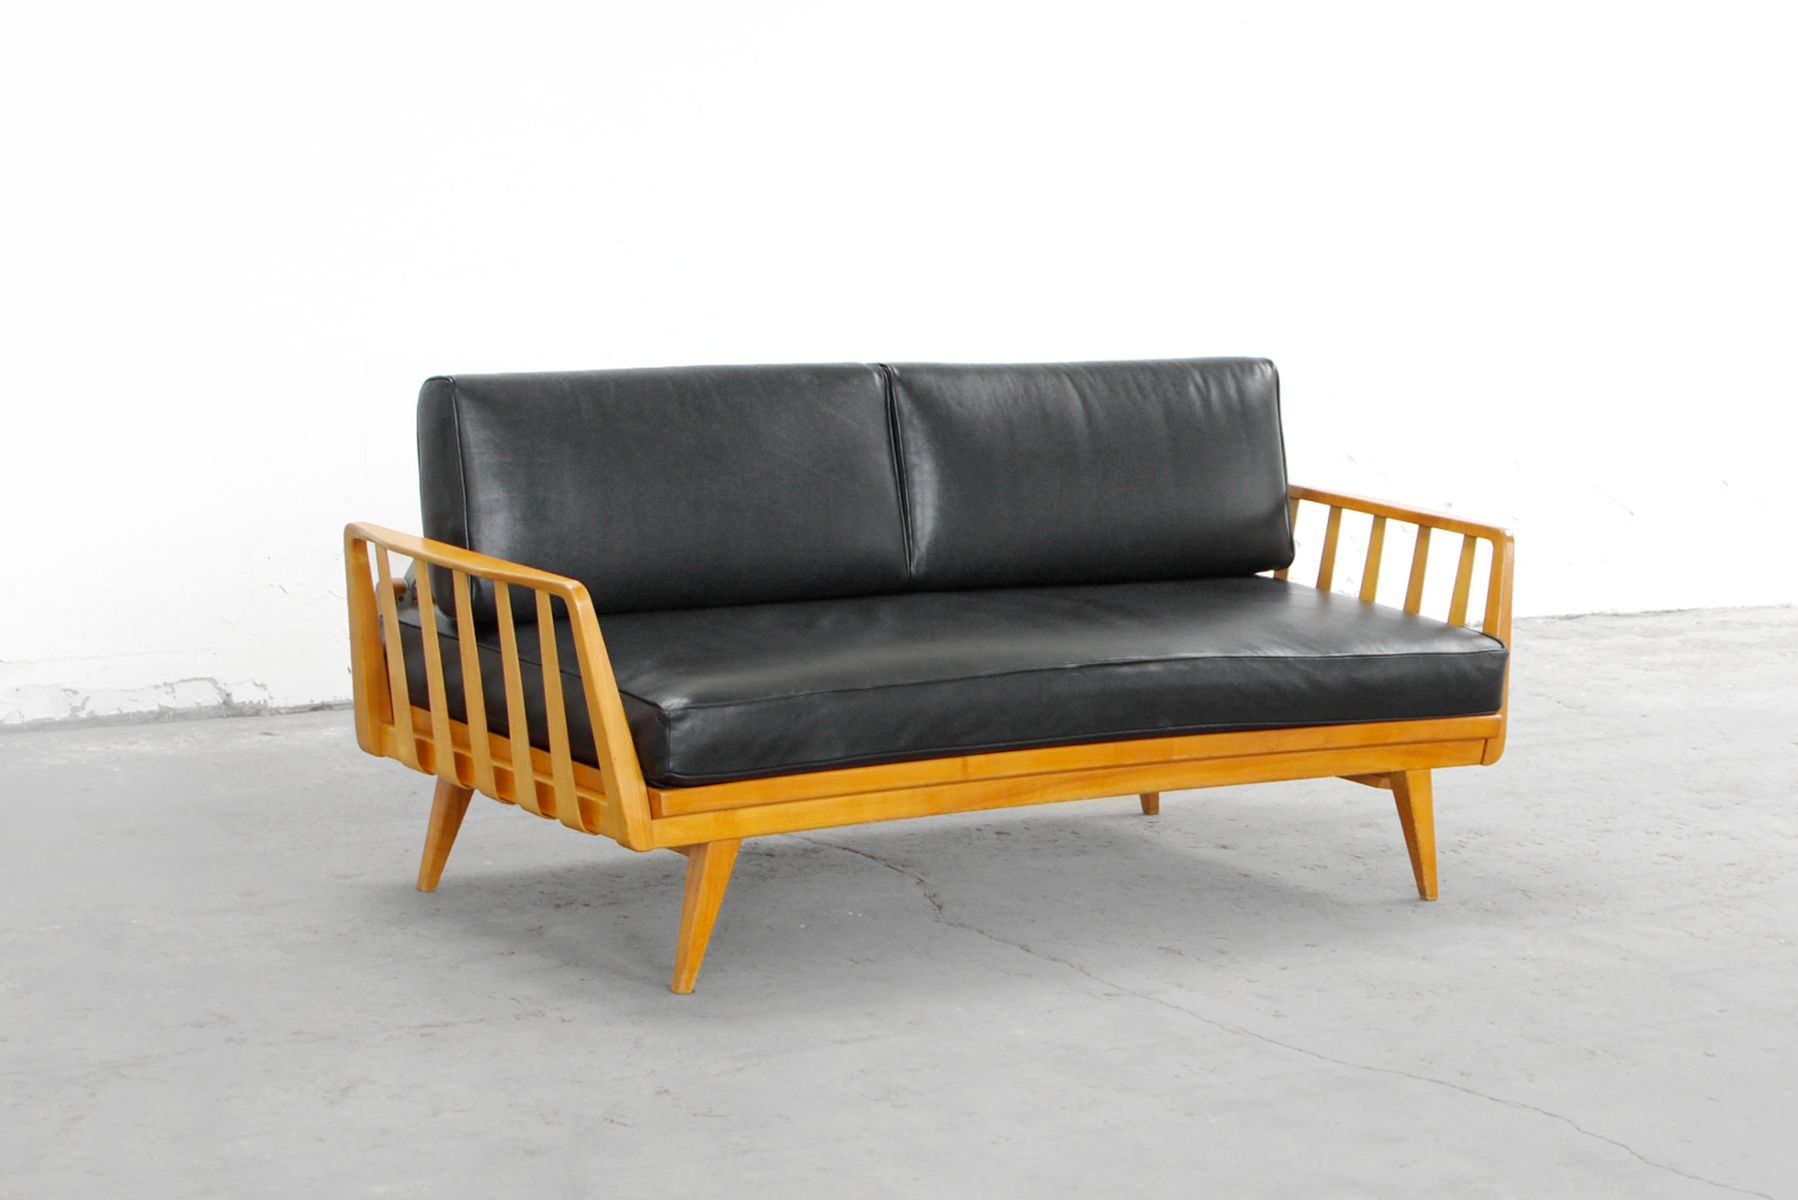 cherrywood sofa by walter knoll for knoll antimott 1950s. Black Bedroom Furniture Sets. Home Design Ideas